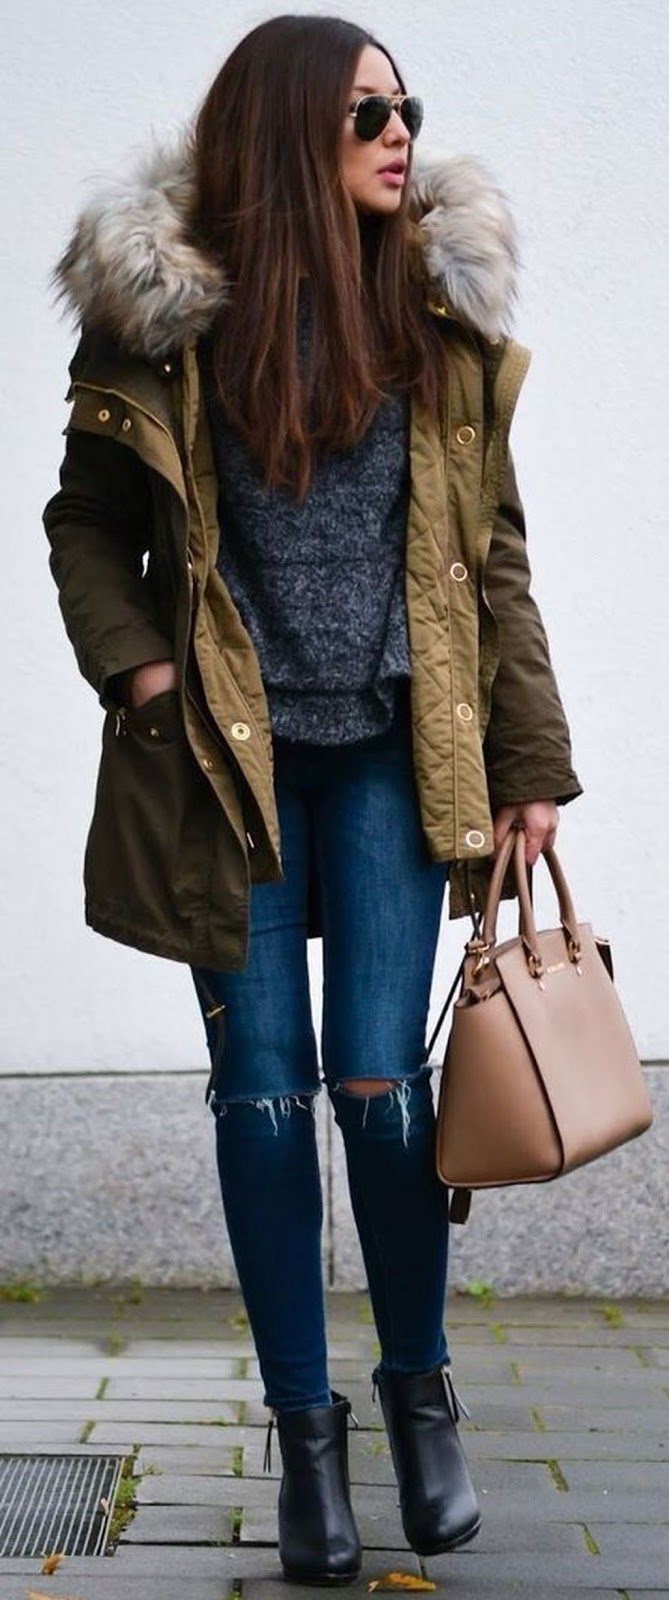 WINTER COATS AND WHAT TO WEAR THEM WITH